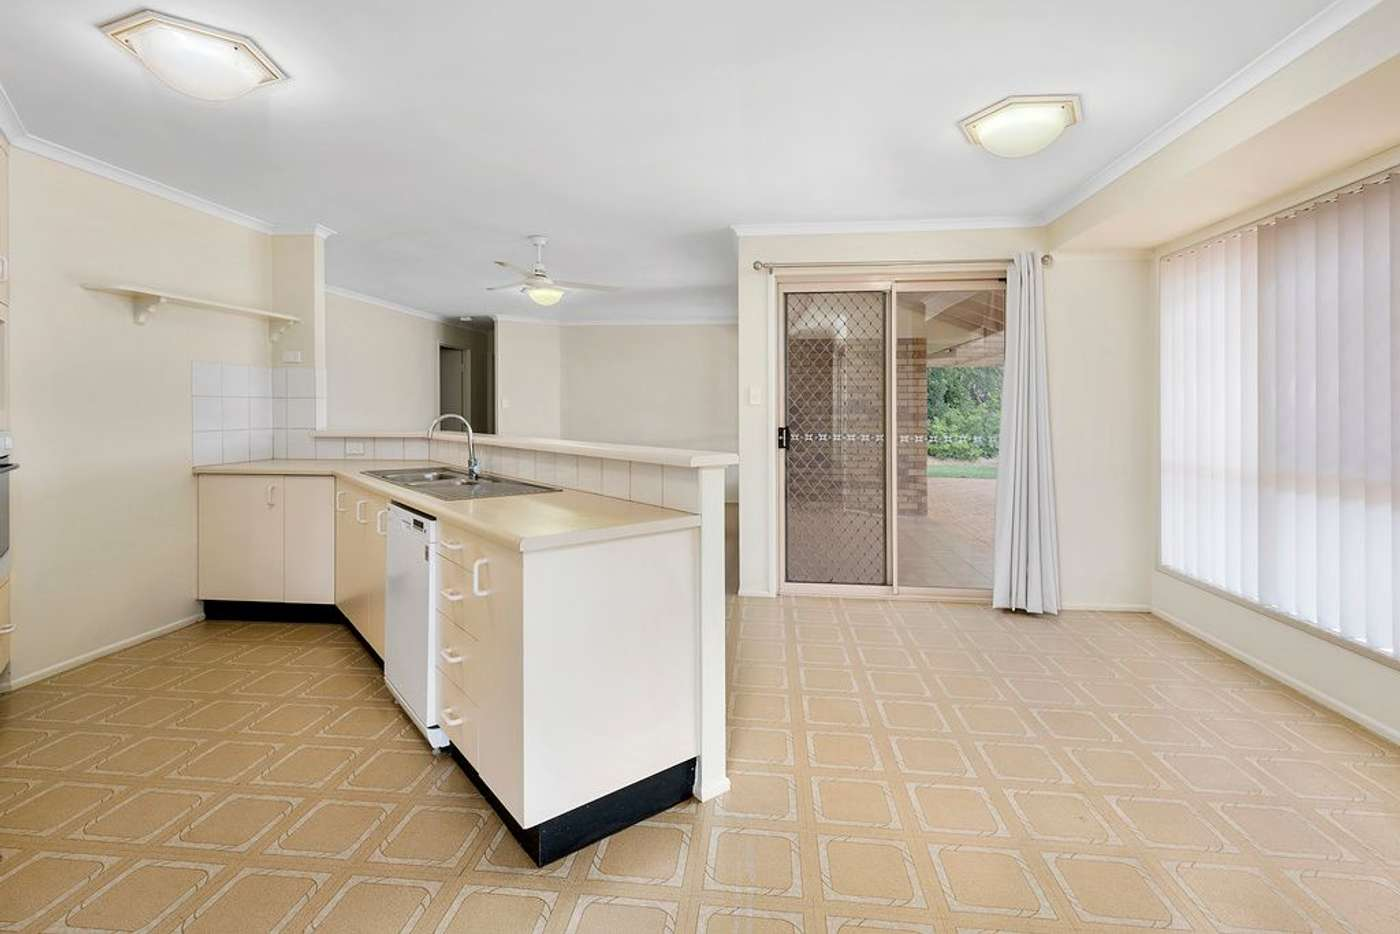 Sixth view of Homely house listing, 7 Falconer Court, Rangeville QLD 4350